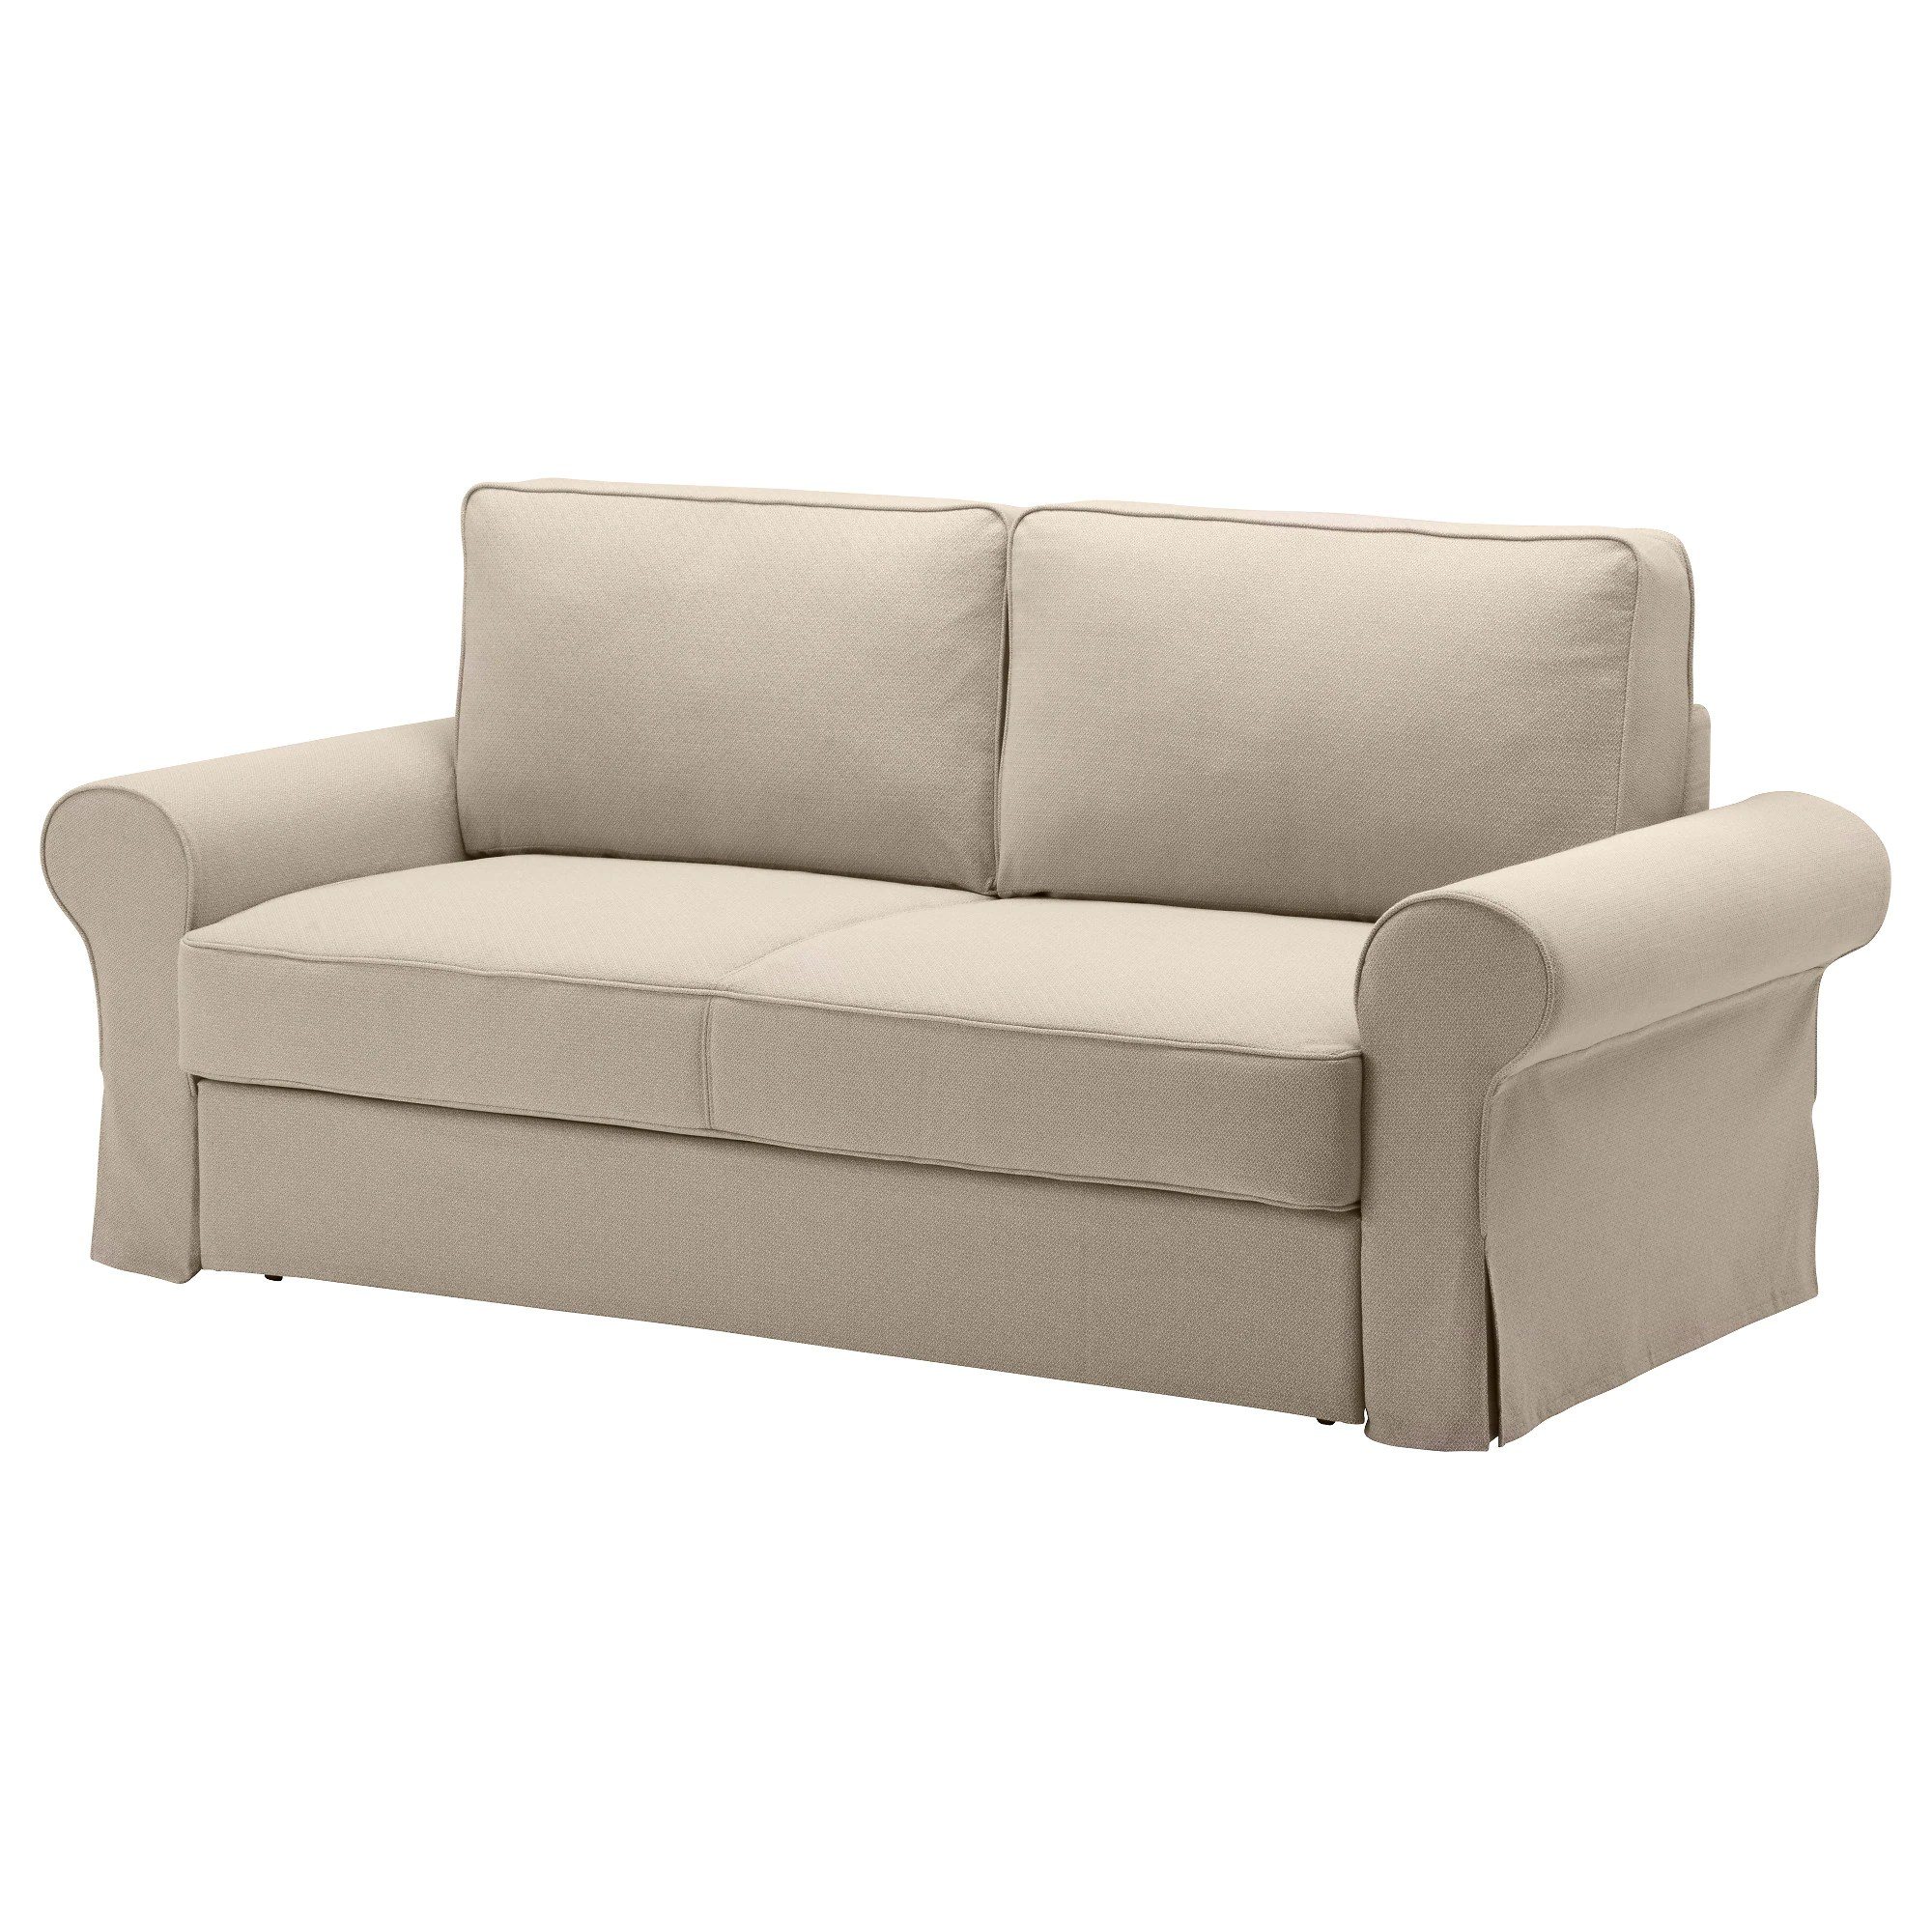 Bz Couchage Quotidien Ikea Canape Cuir Convertible Ikea